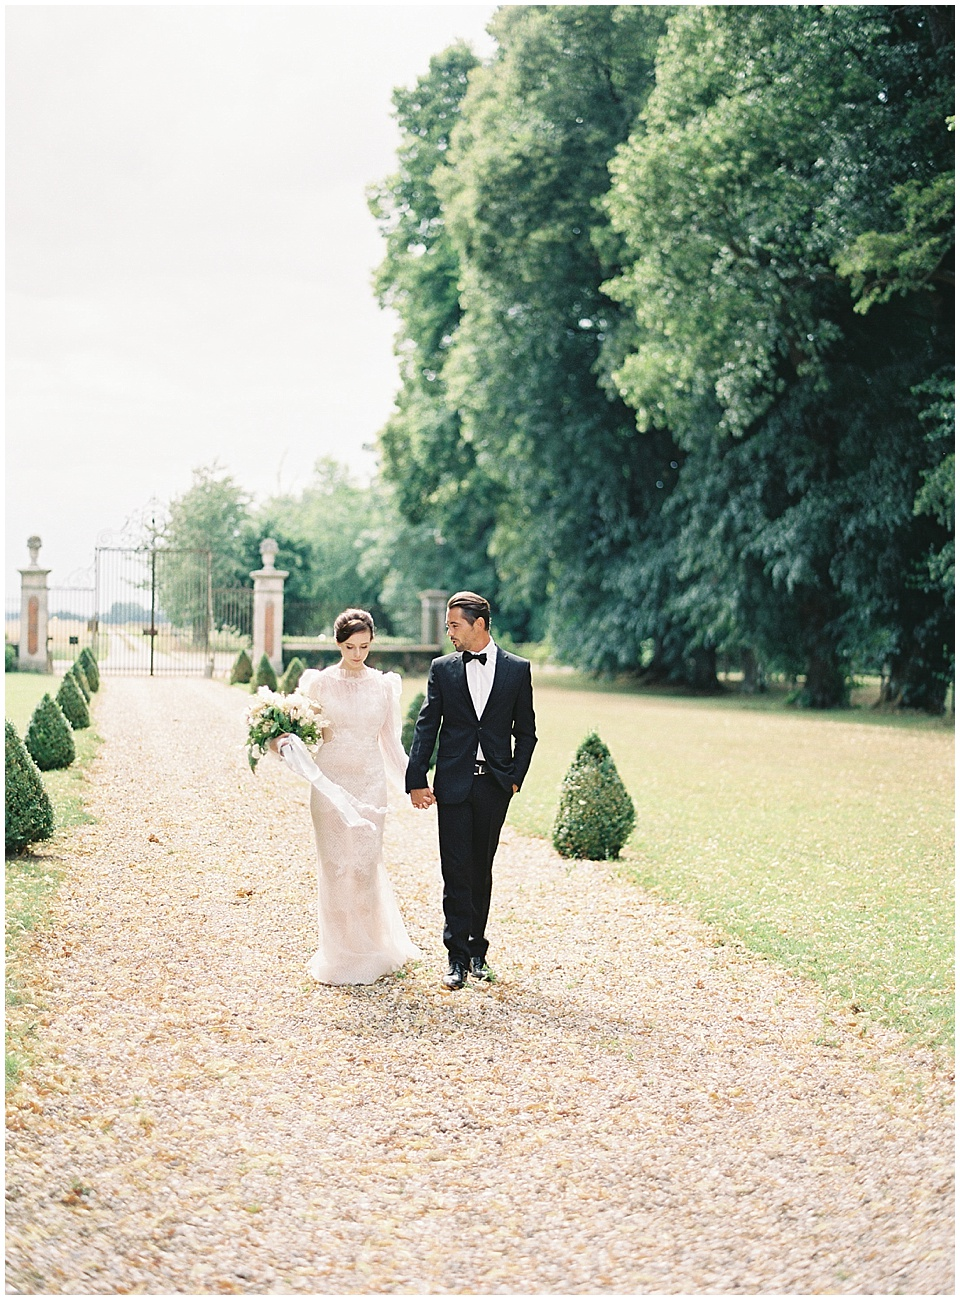 Bride and groom portraits | Yolan Cris wedding gown | Bows and Arrows florals | French Wedding Inspiration | France Wedding | Destination Film Photographer | Paris Wedding | Fine Art Film Photographer |  Chateau De Carsix | Whiskers and Willow Photography